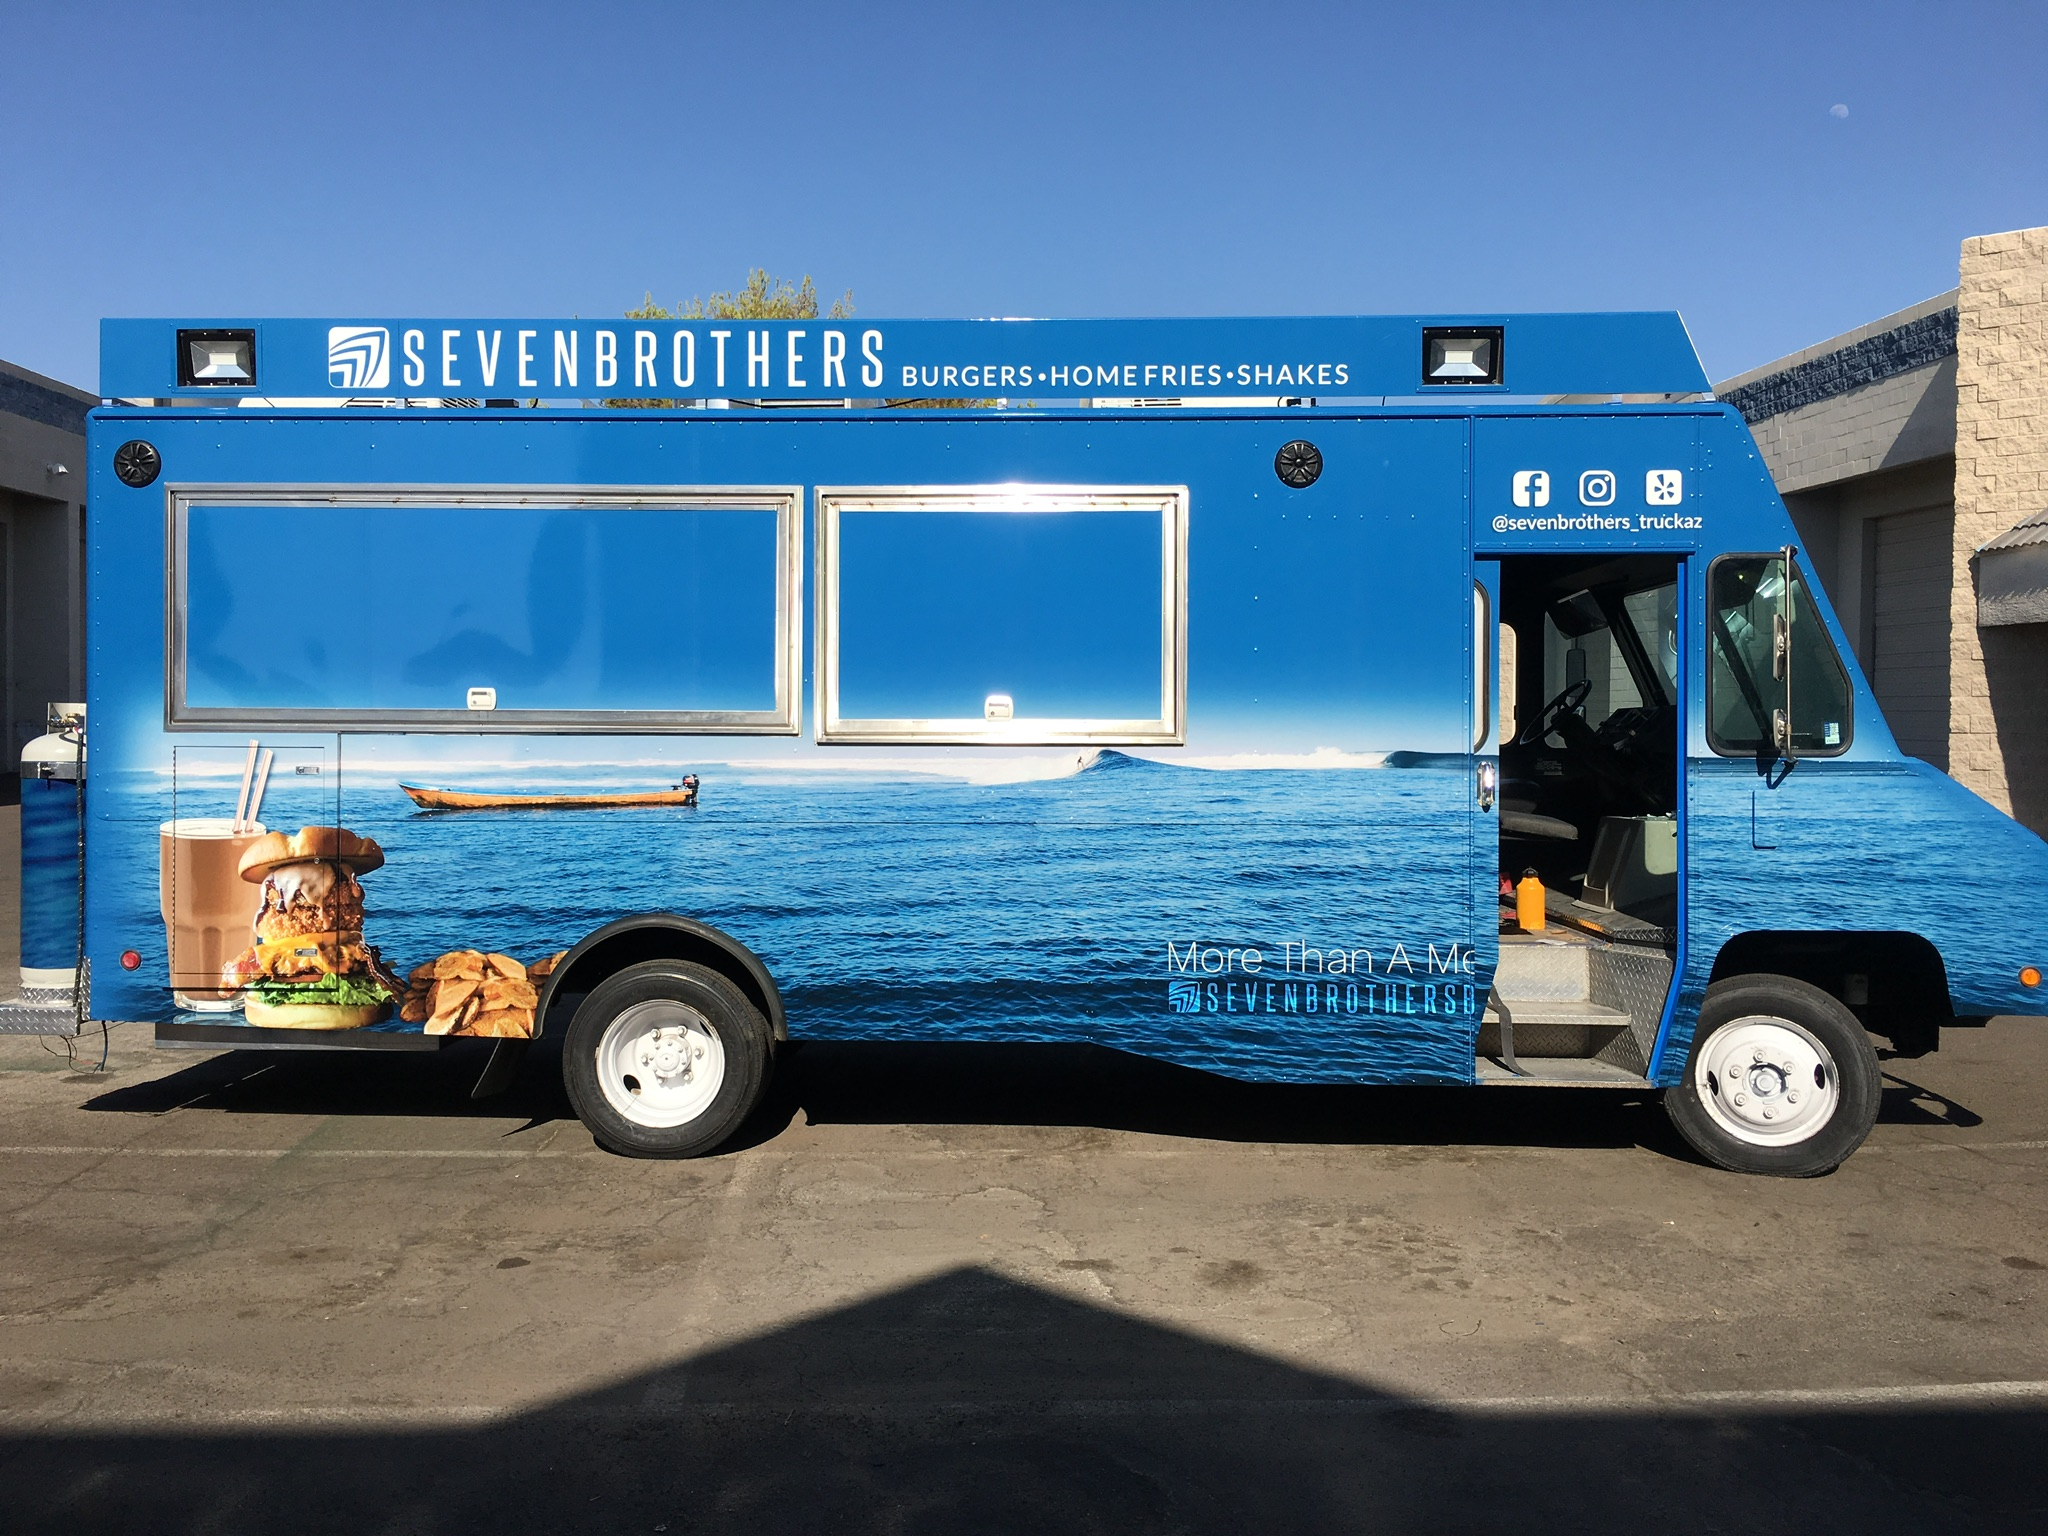 Food Trucks For Sale Near Me >> Top Notch Burger Food Truck For Sale Near Gilbert Arizona